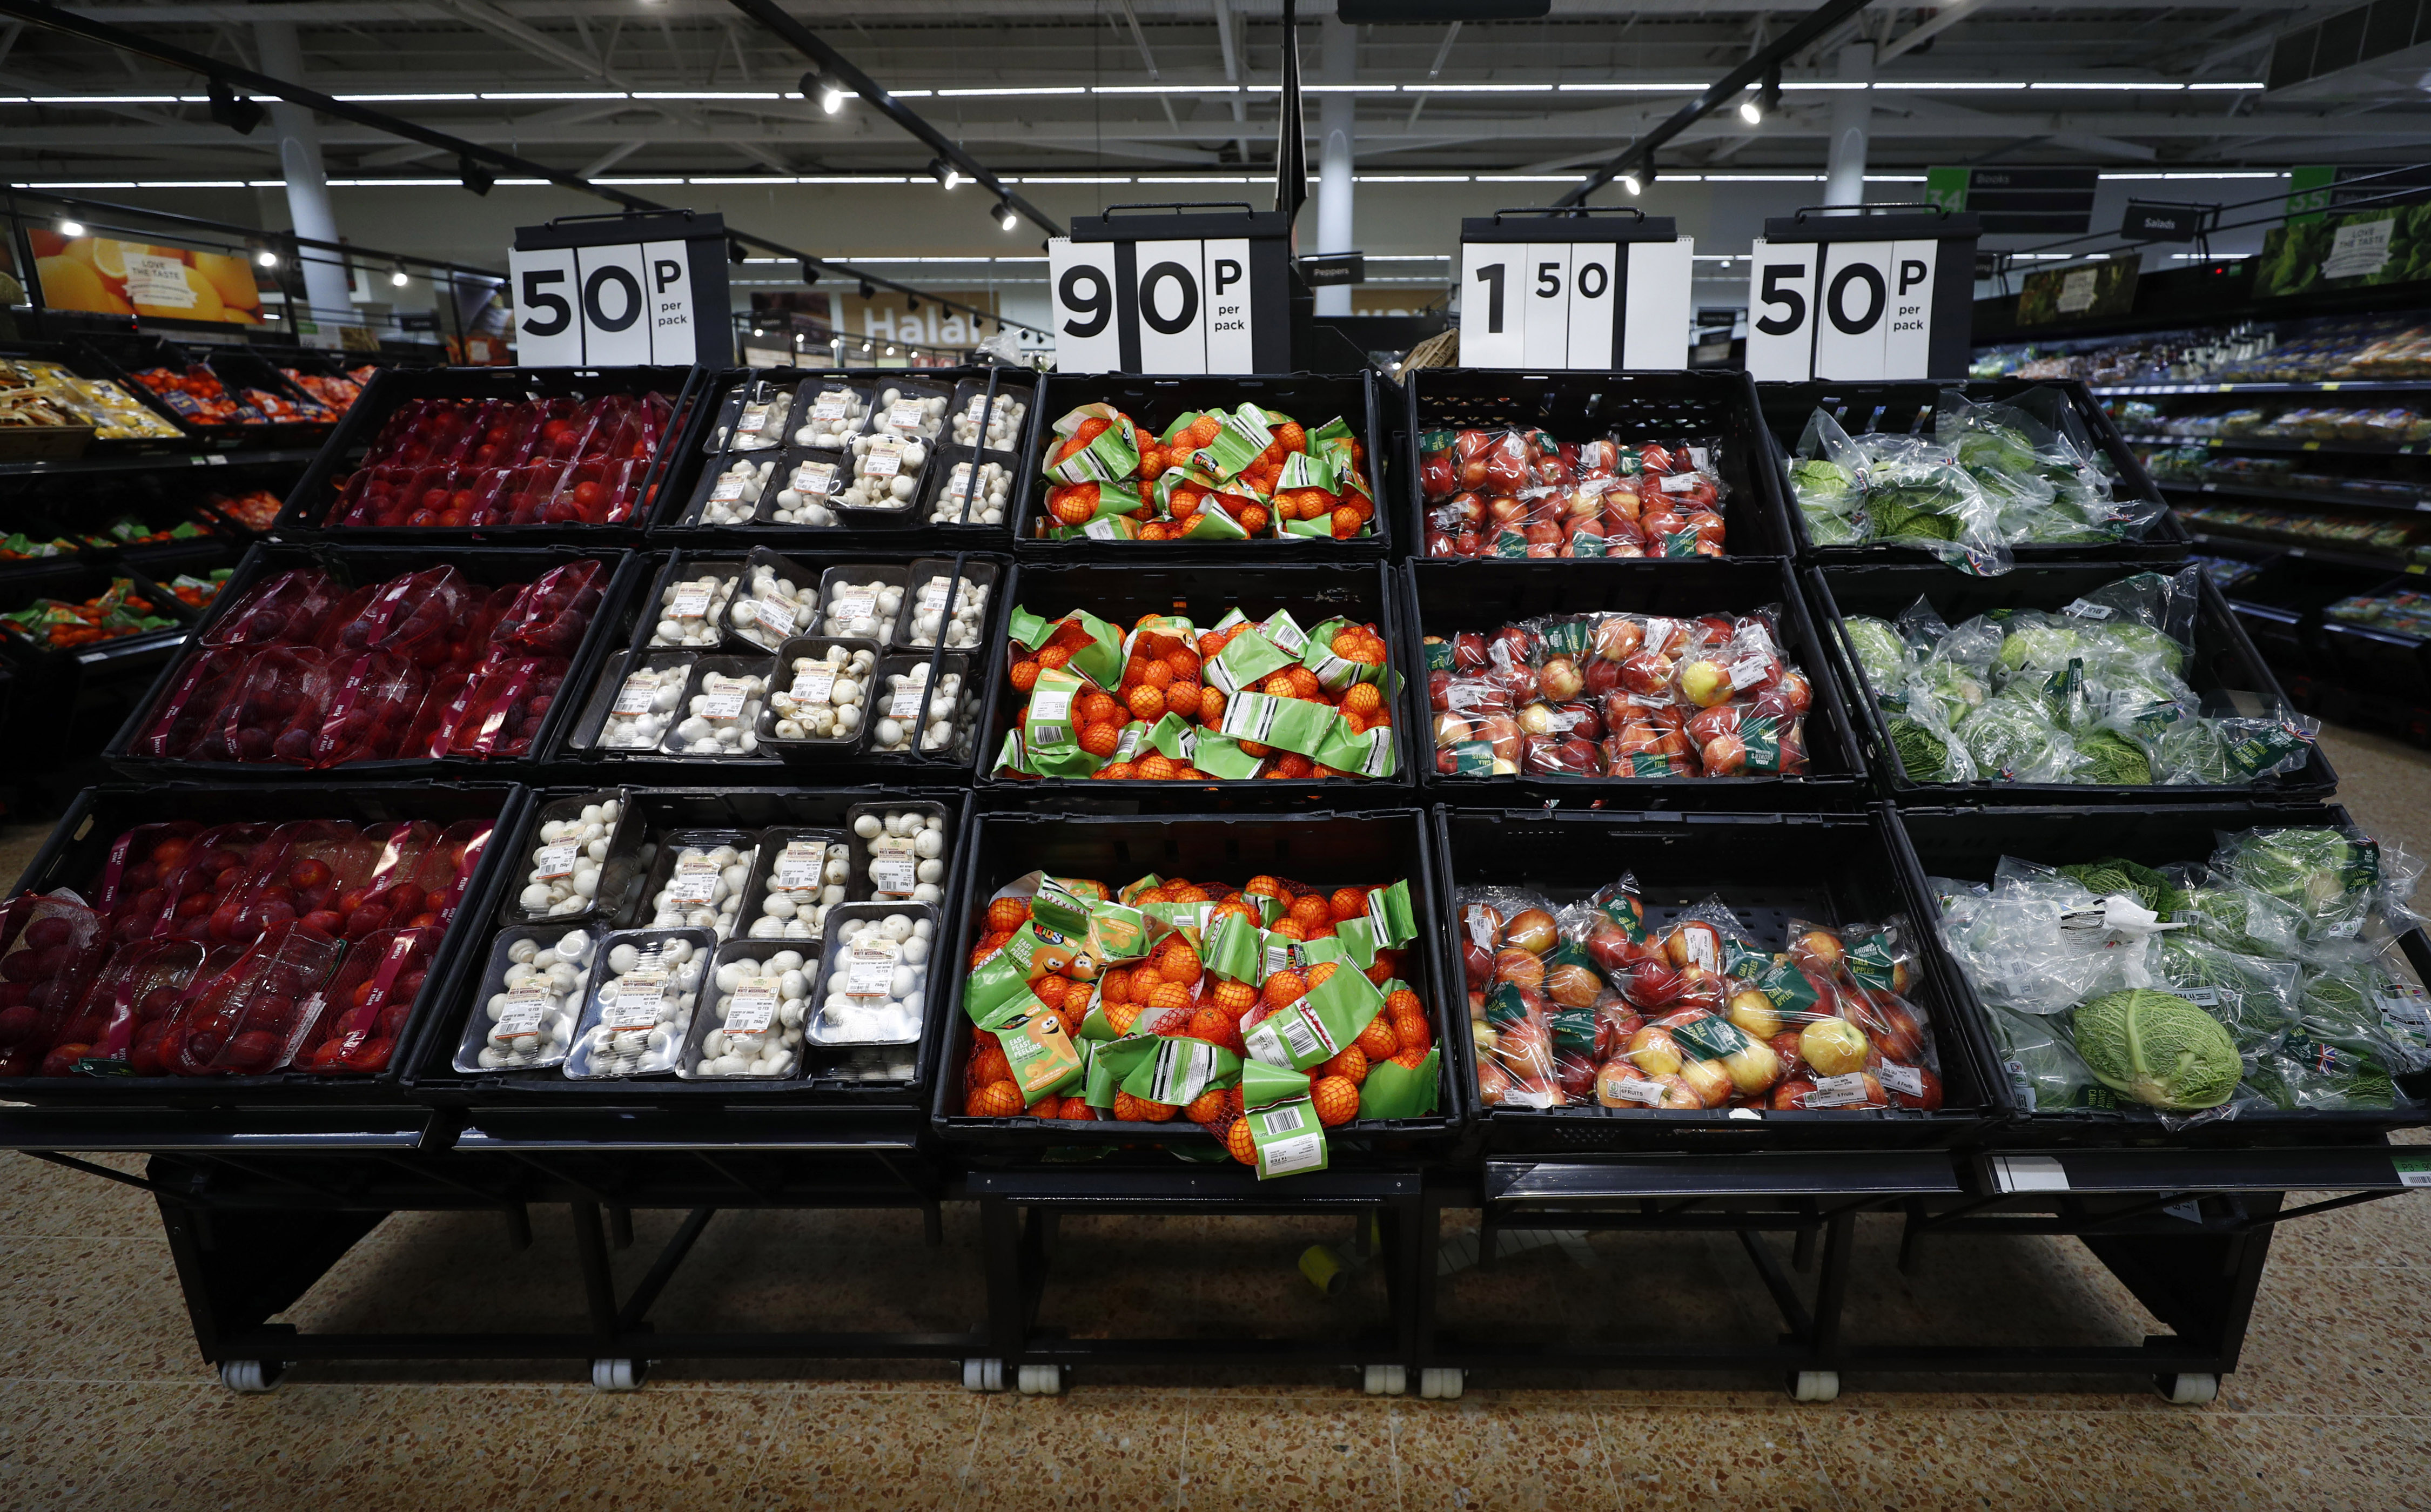 Fresh fruit and vegetables are displayed at the Asda superstore in High Wycombe, Britain, February 8, 2017.